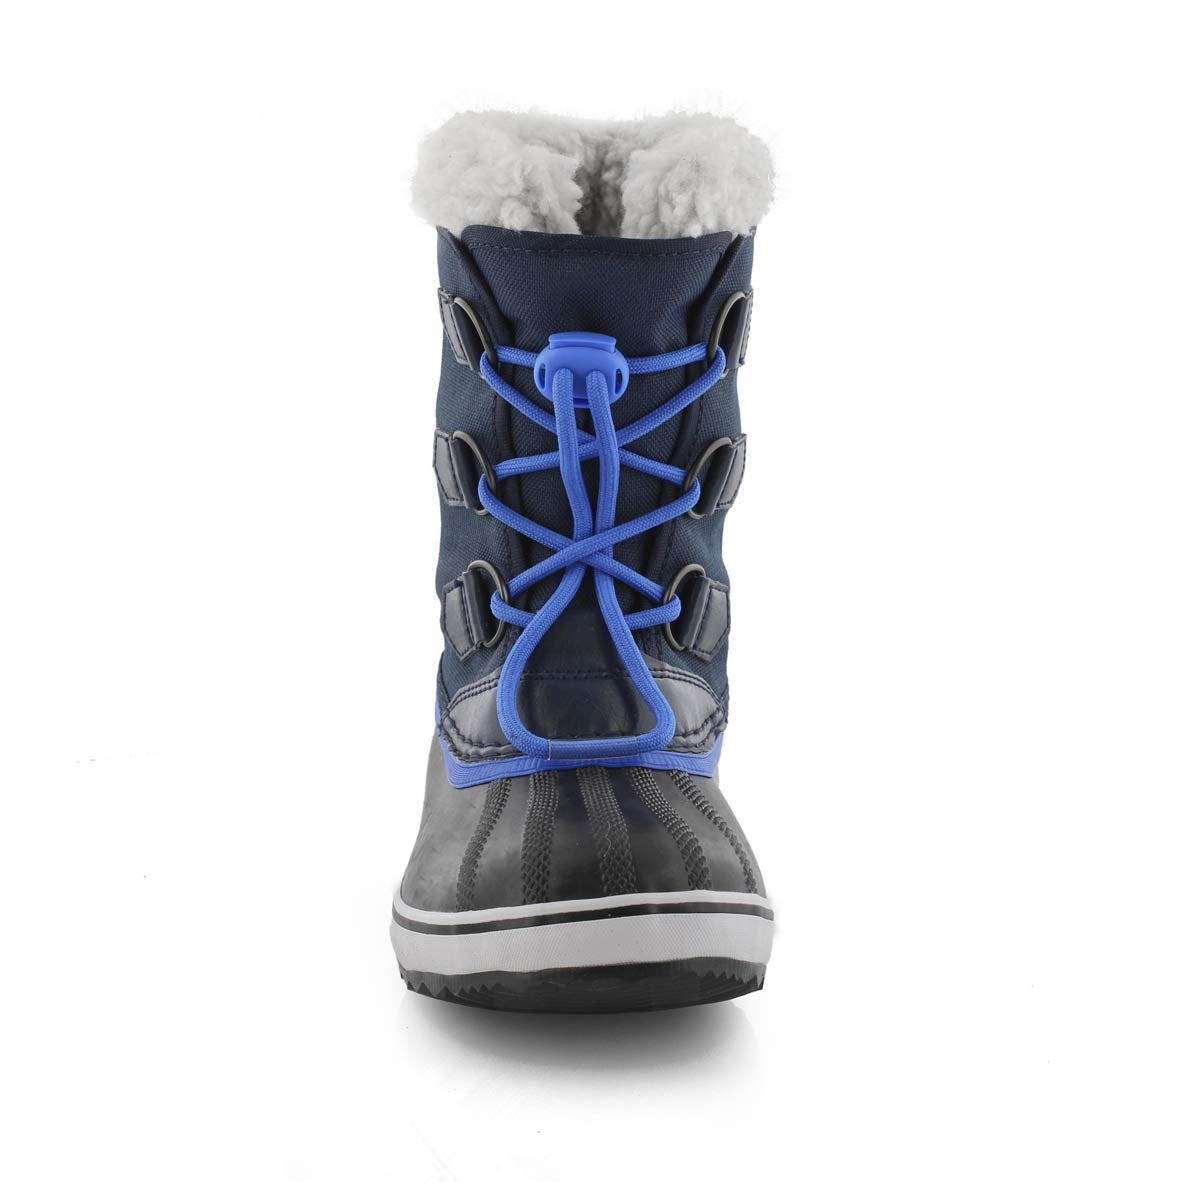 Kds Yoot Pac Nylon nvy wtpf snow boot